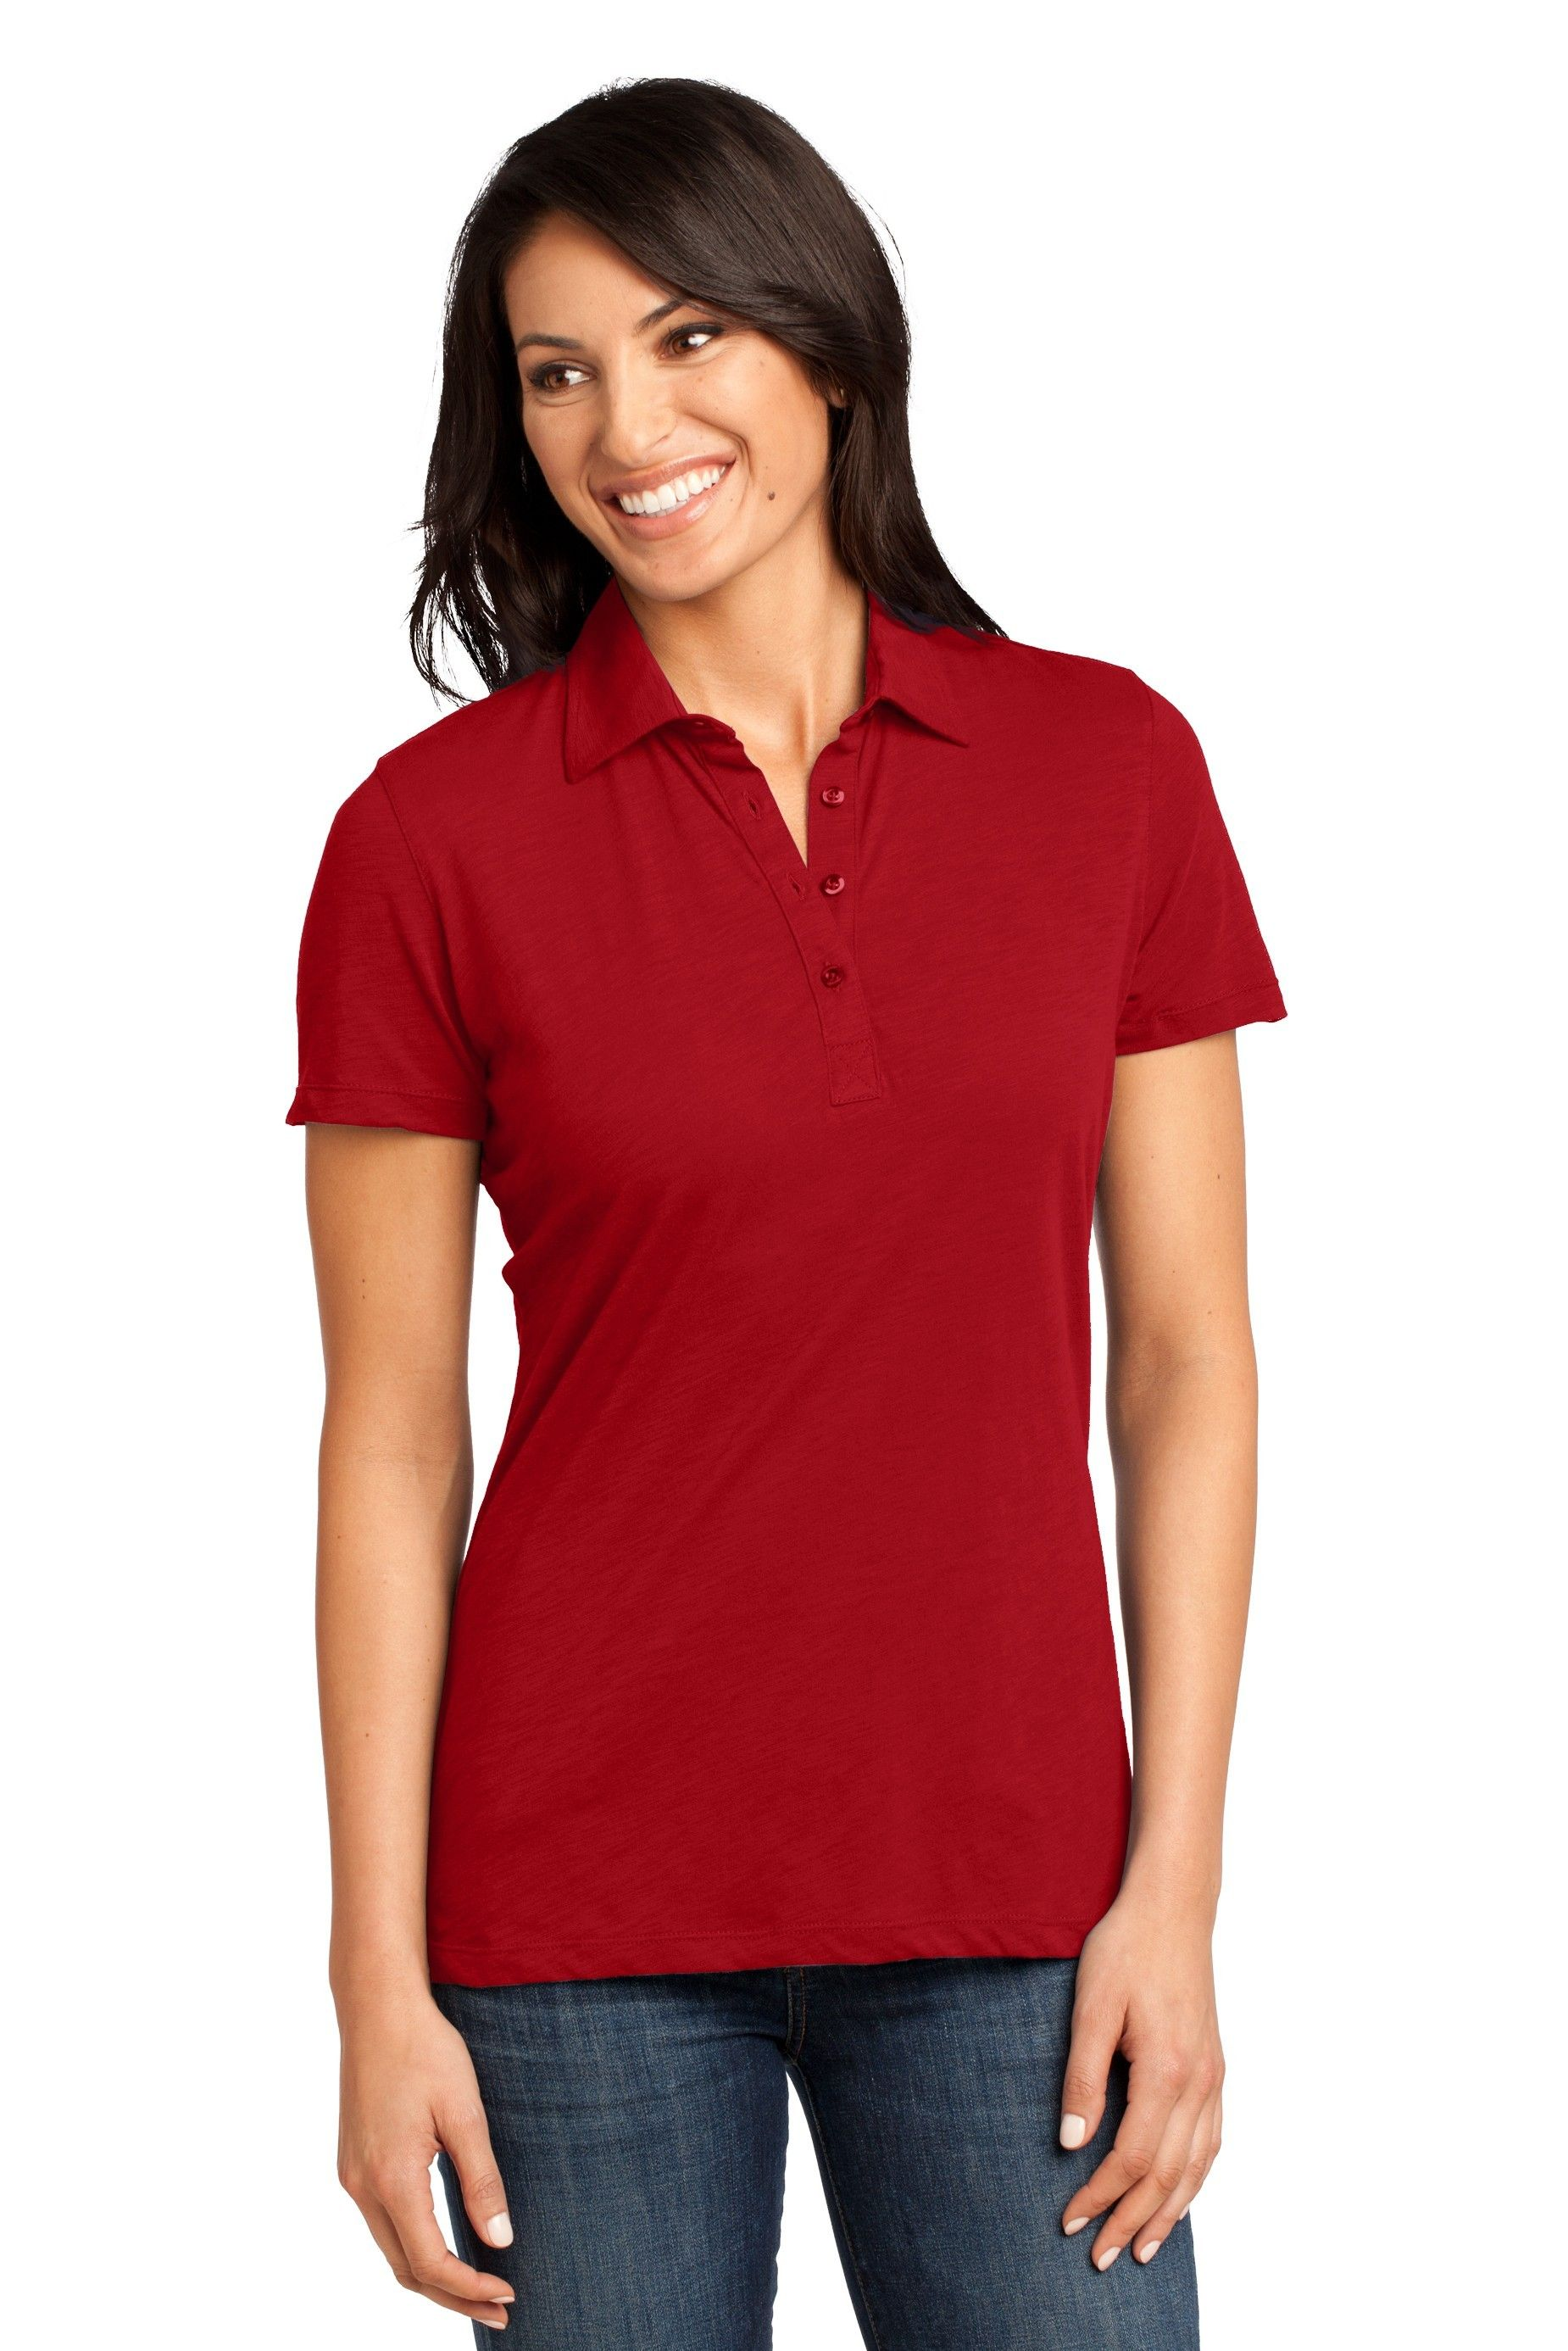 District Made Womens Plus Size Golf Polo Golftennisfitness